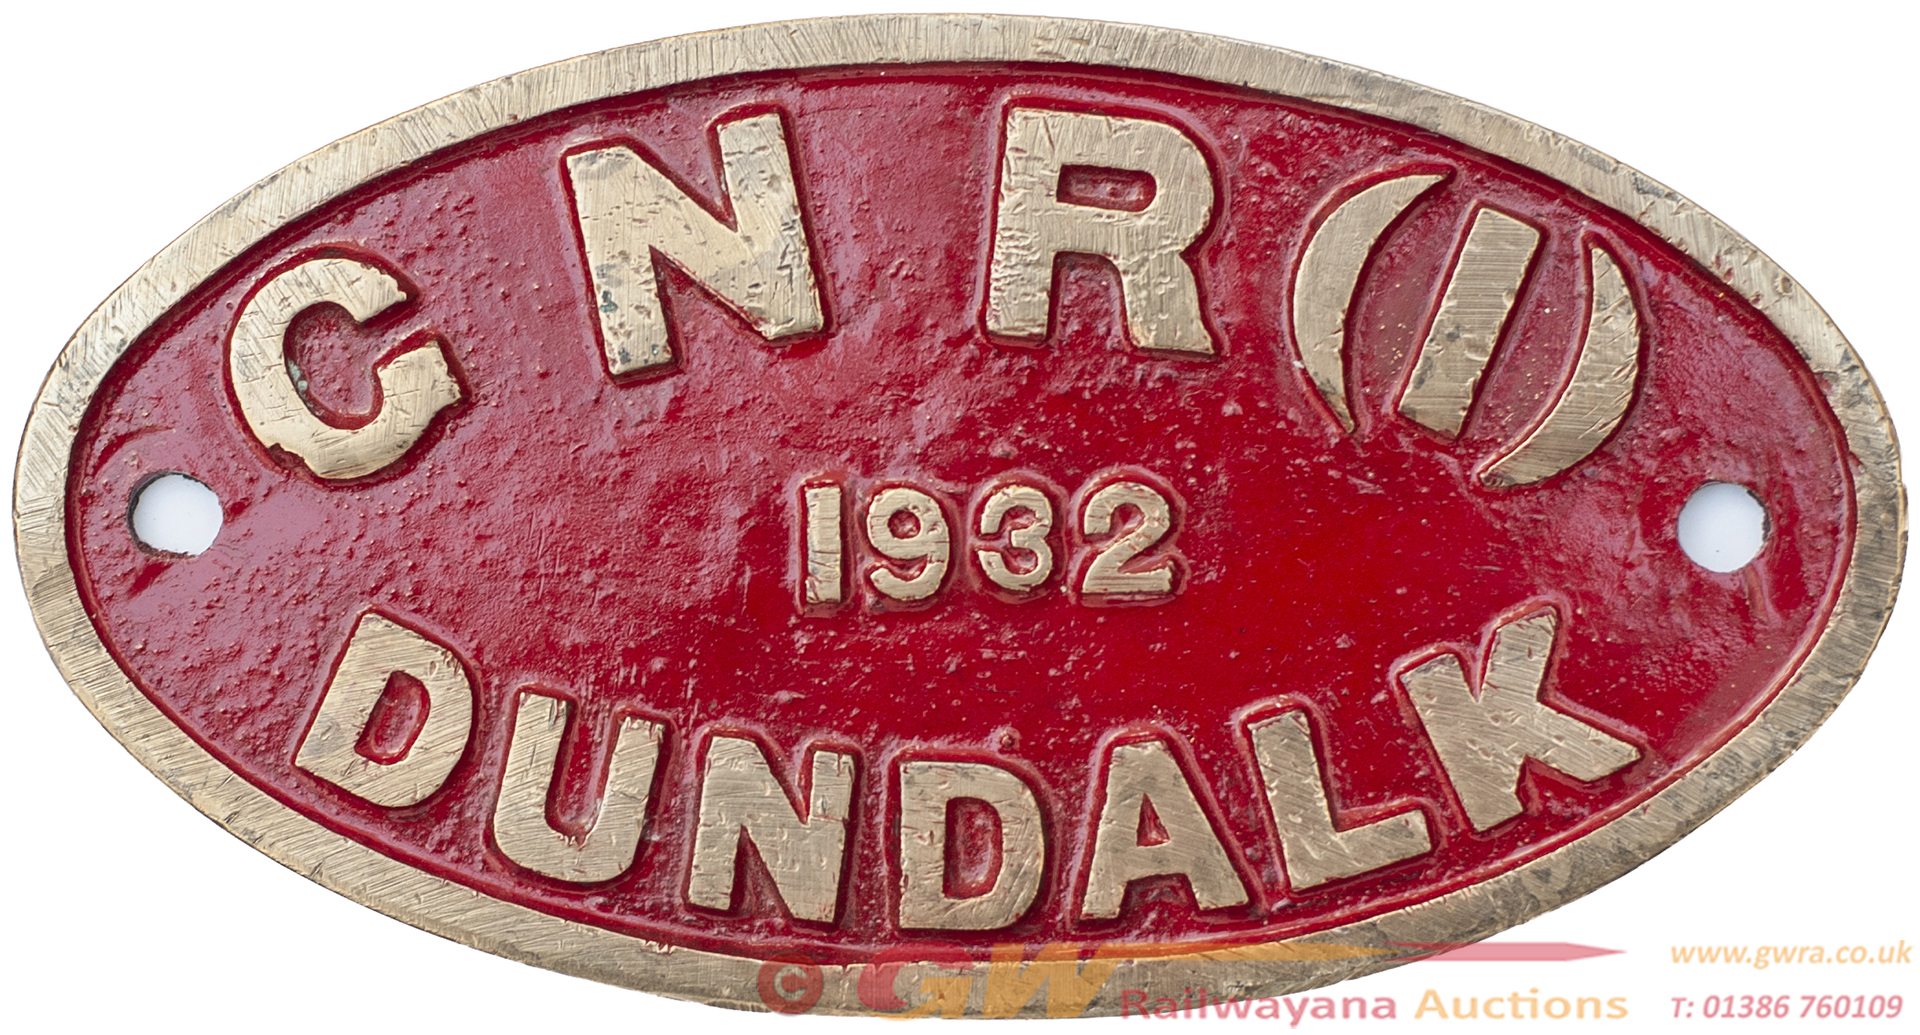 Tenderplate GNR(I) 1932 DUNDALK Possibly Ex 4-4-0